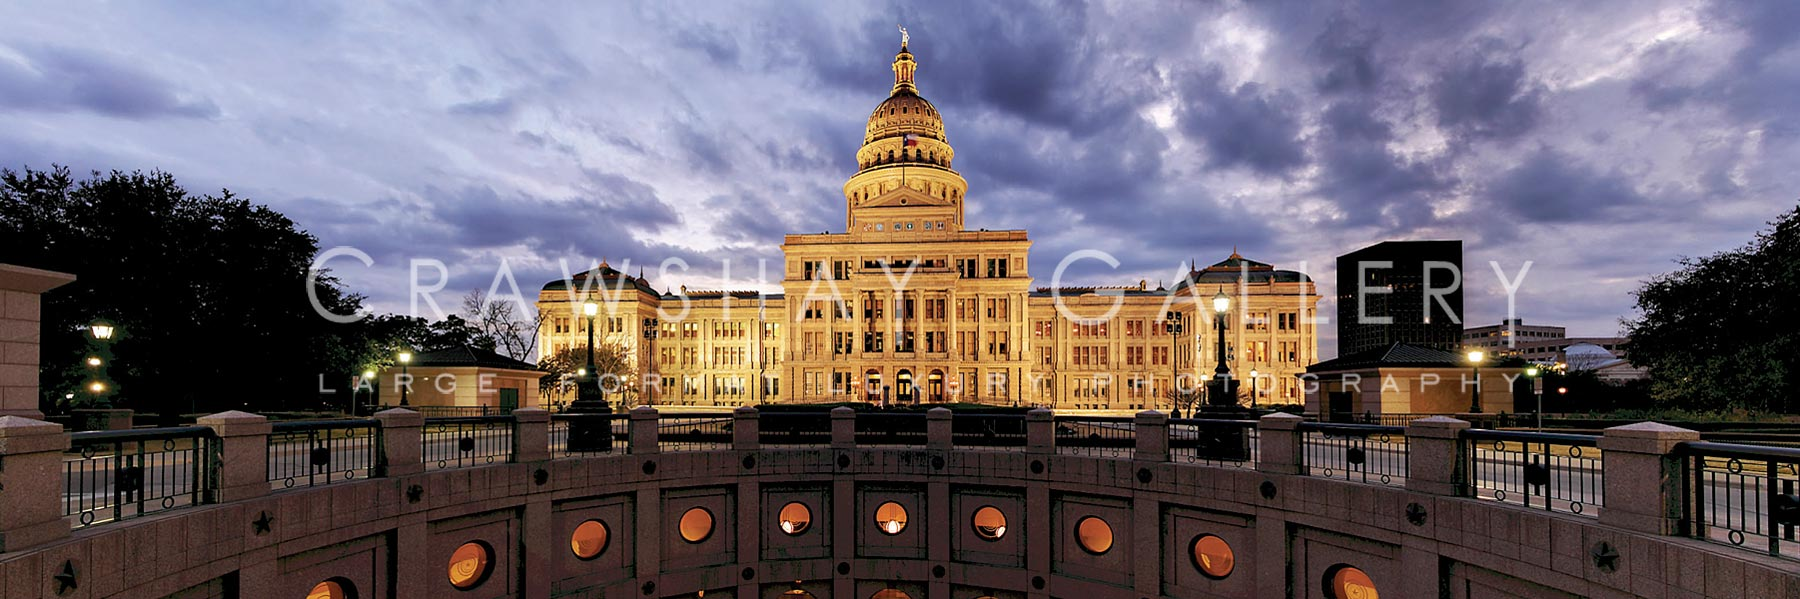 Rear View of the Texas State Capitol in Austin TX